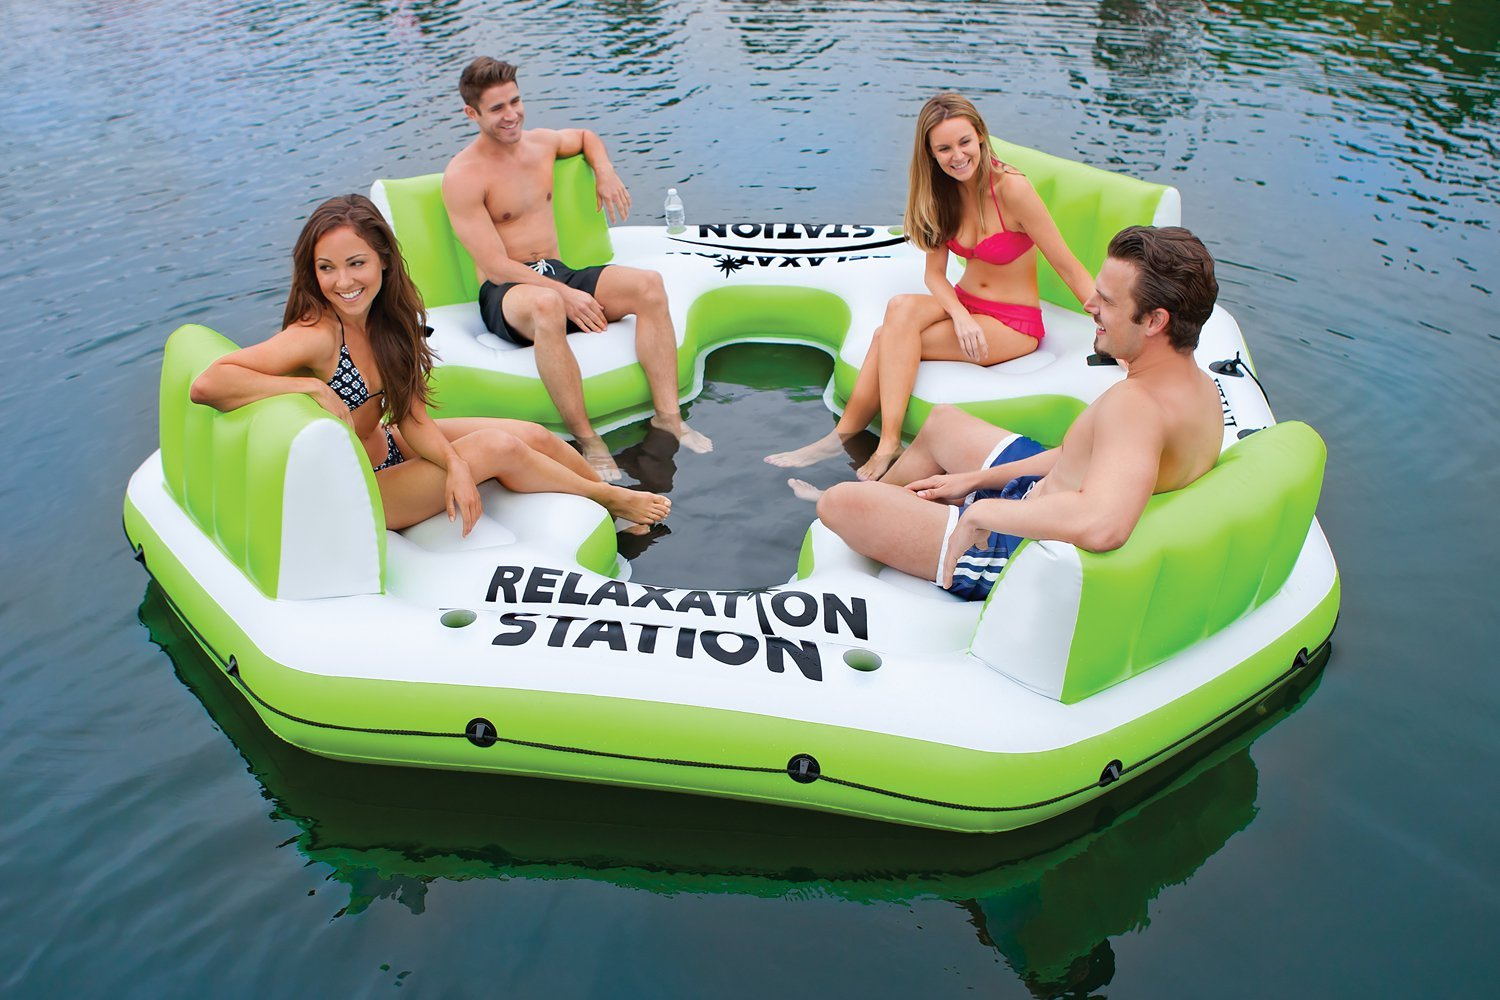 Amazon.com : Intex Pacific Paradise Relaxation Station Water Lounge  4 Person River Tube Raft : Sports U0026 Outdoors